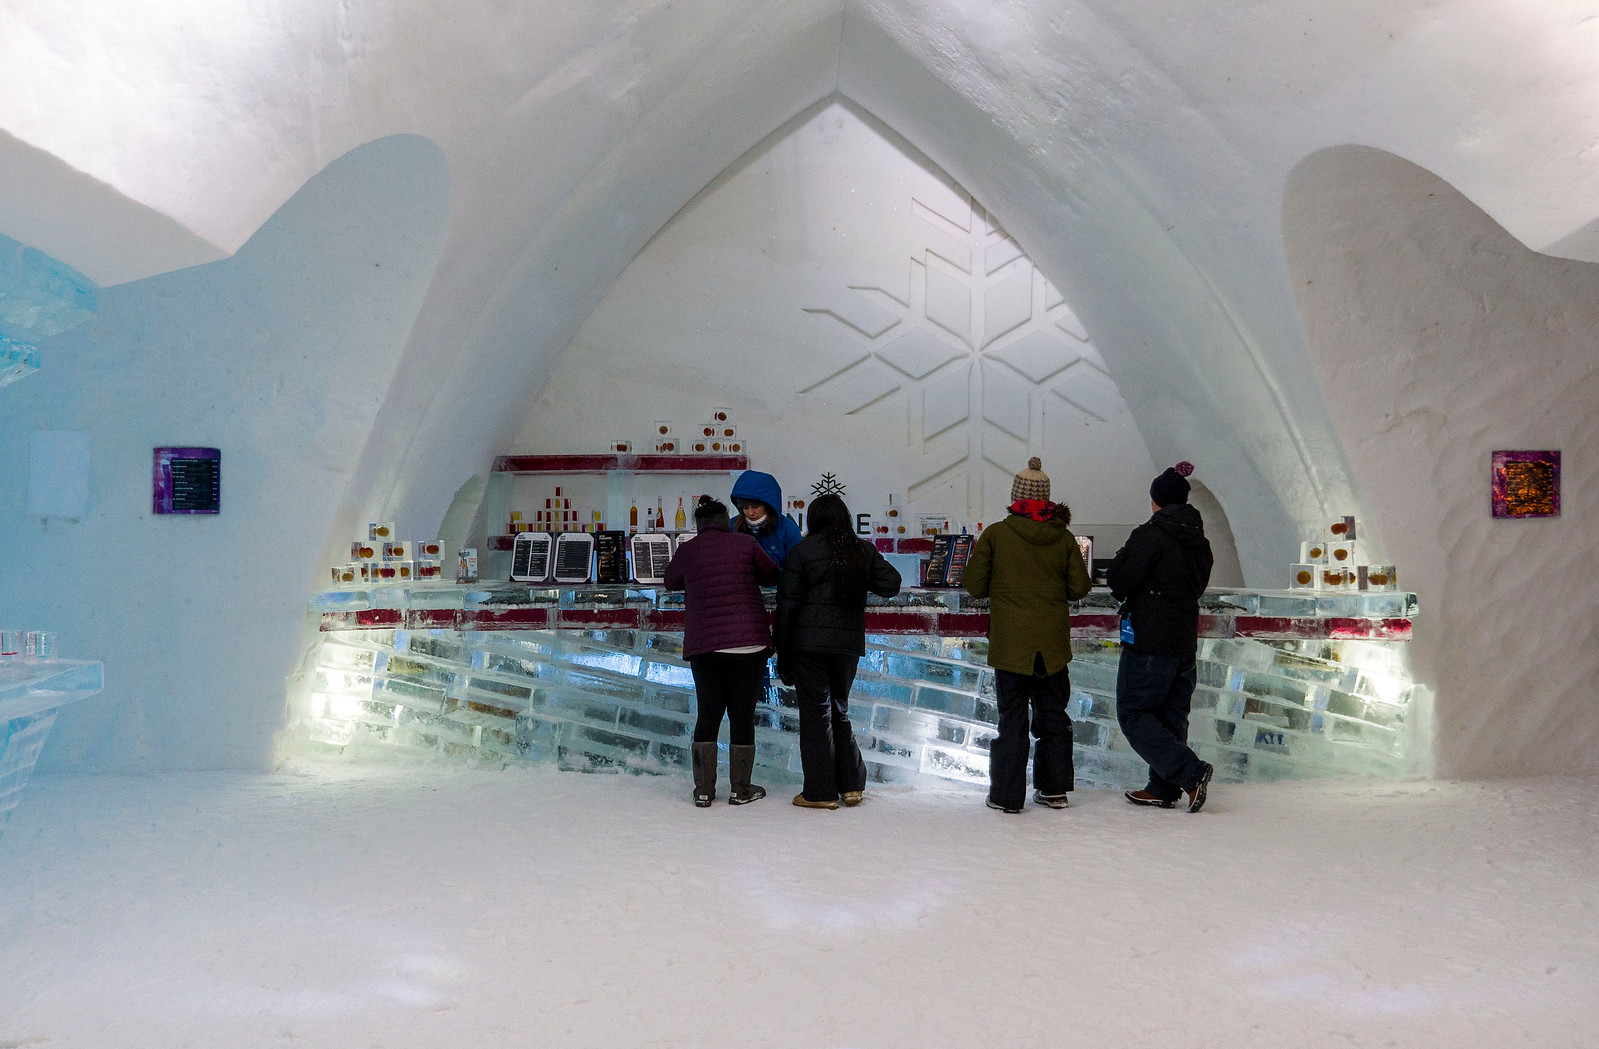 Ice Hotel Quebec: An Insider's Guide to Surviving the Night - the ice bar